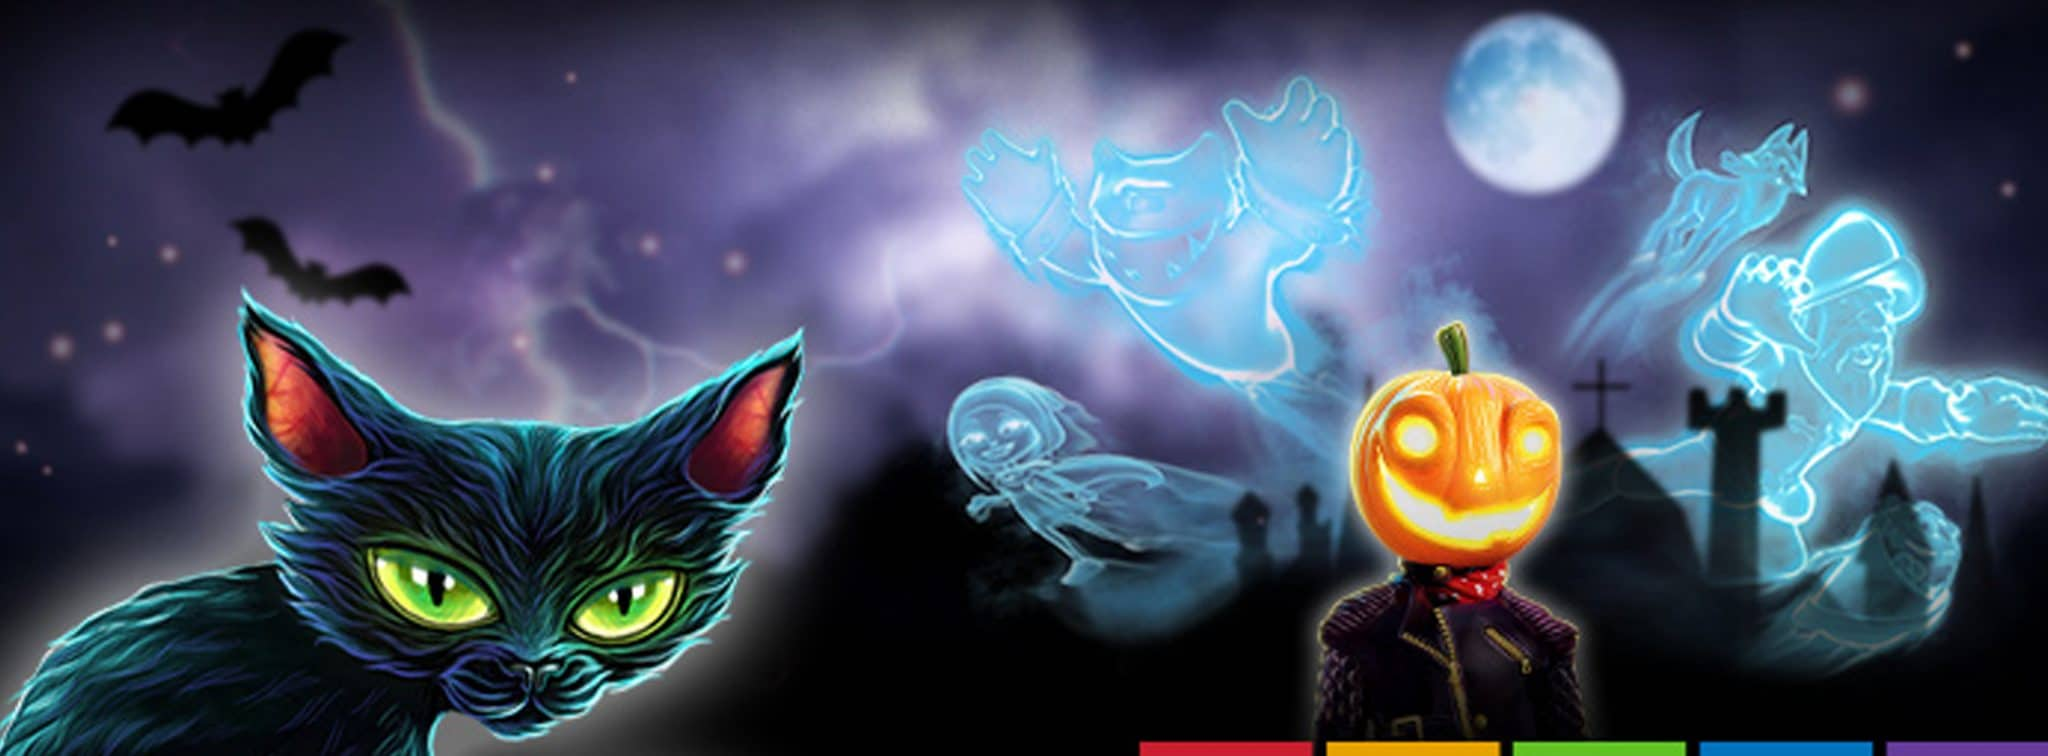 Get a Halloween Welcome Bonus at SlotsMillion Casino element01 - CasinoTop